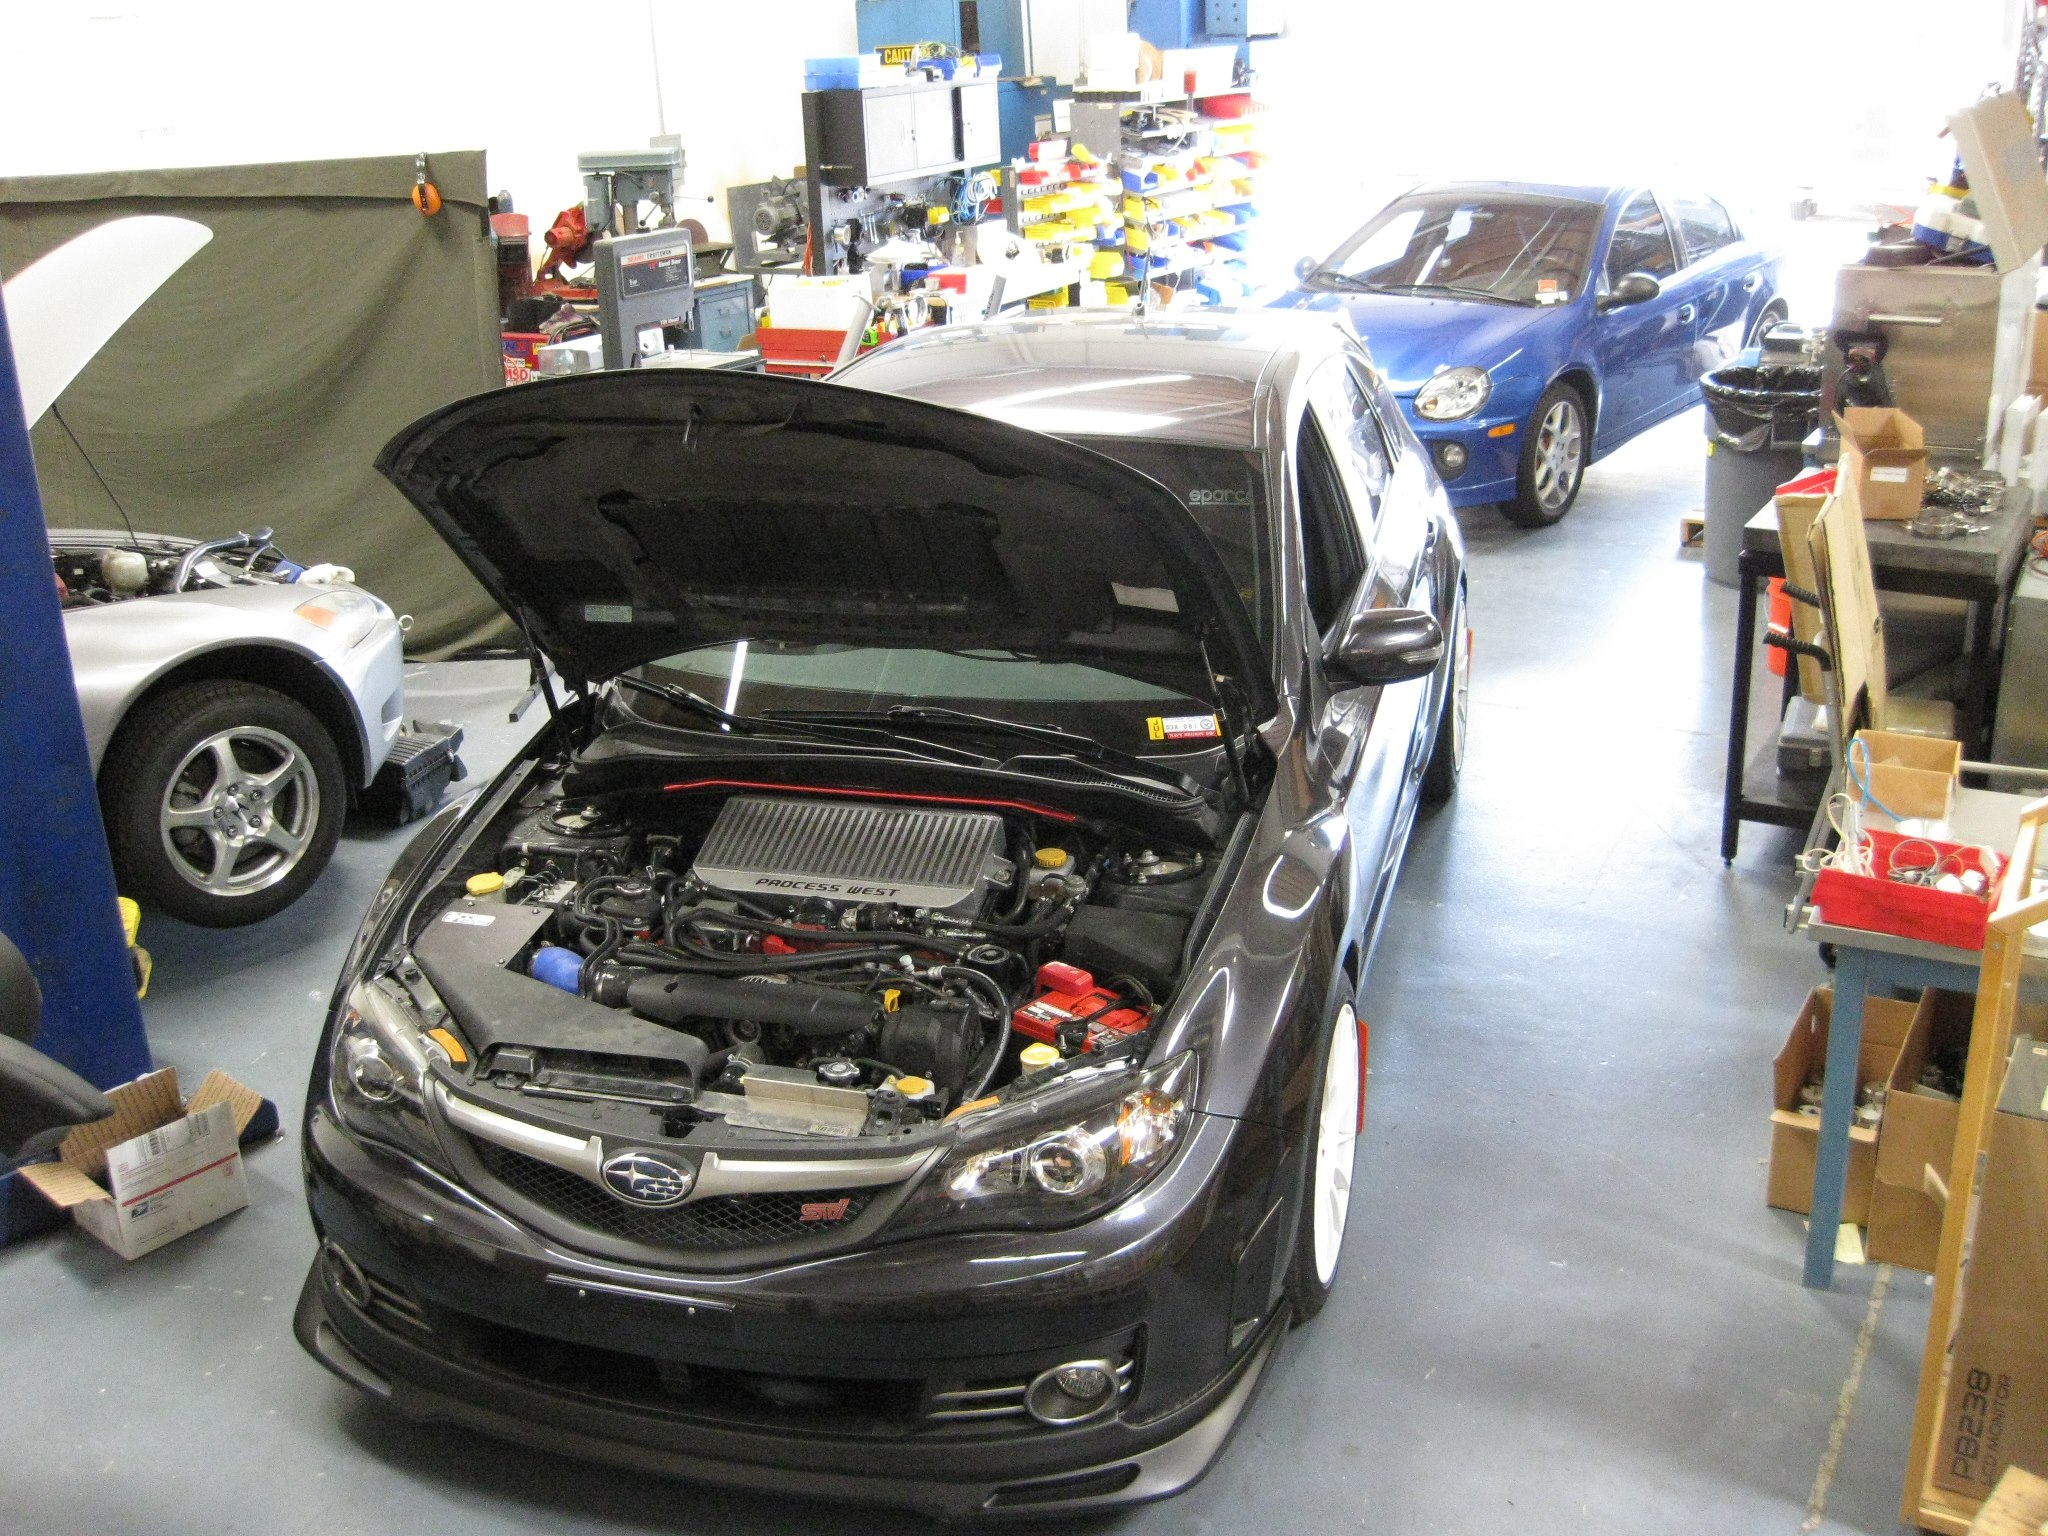 Don's 08 STI. STI Hatchback/Wagon or bust!-902456_10151537573578418_913322422_o-jpg